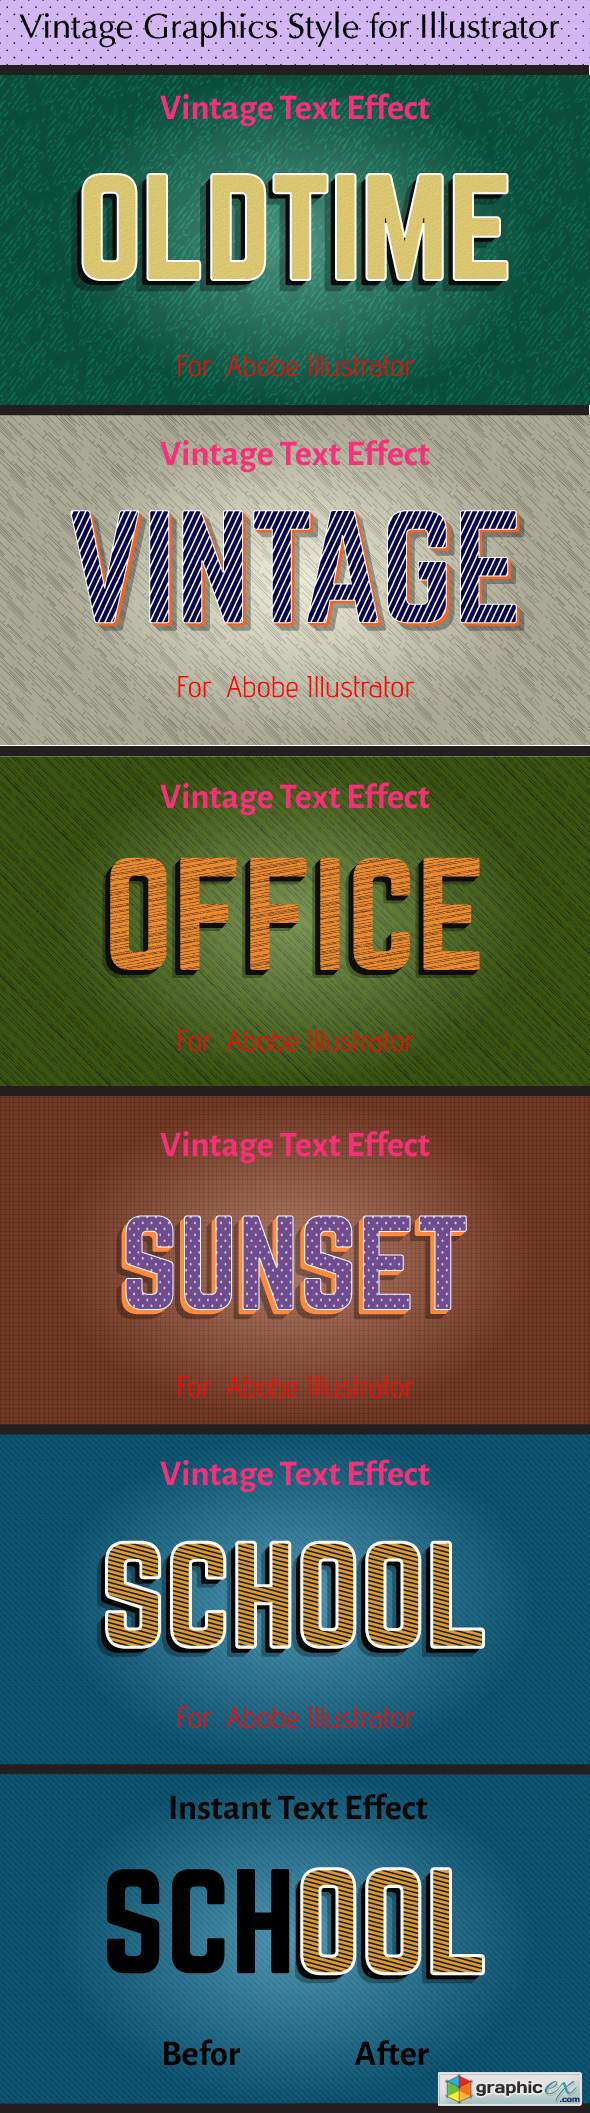 Vintage Graphics Style for Illustrator